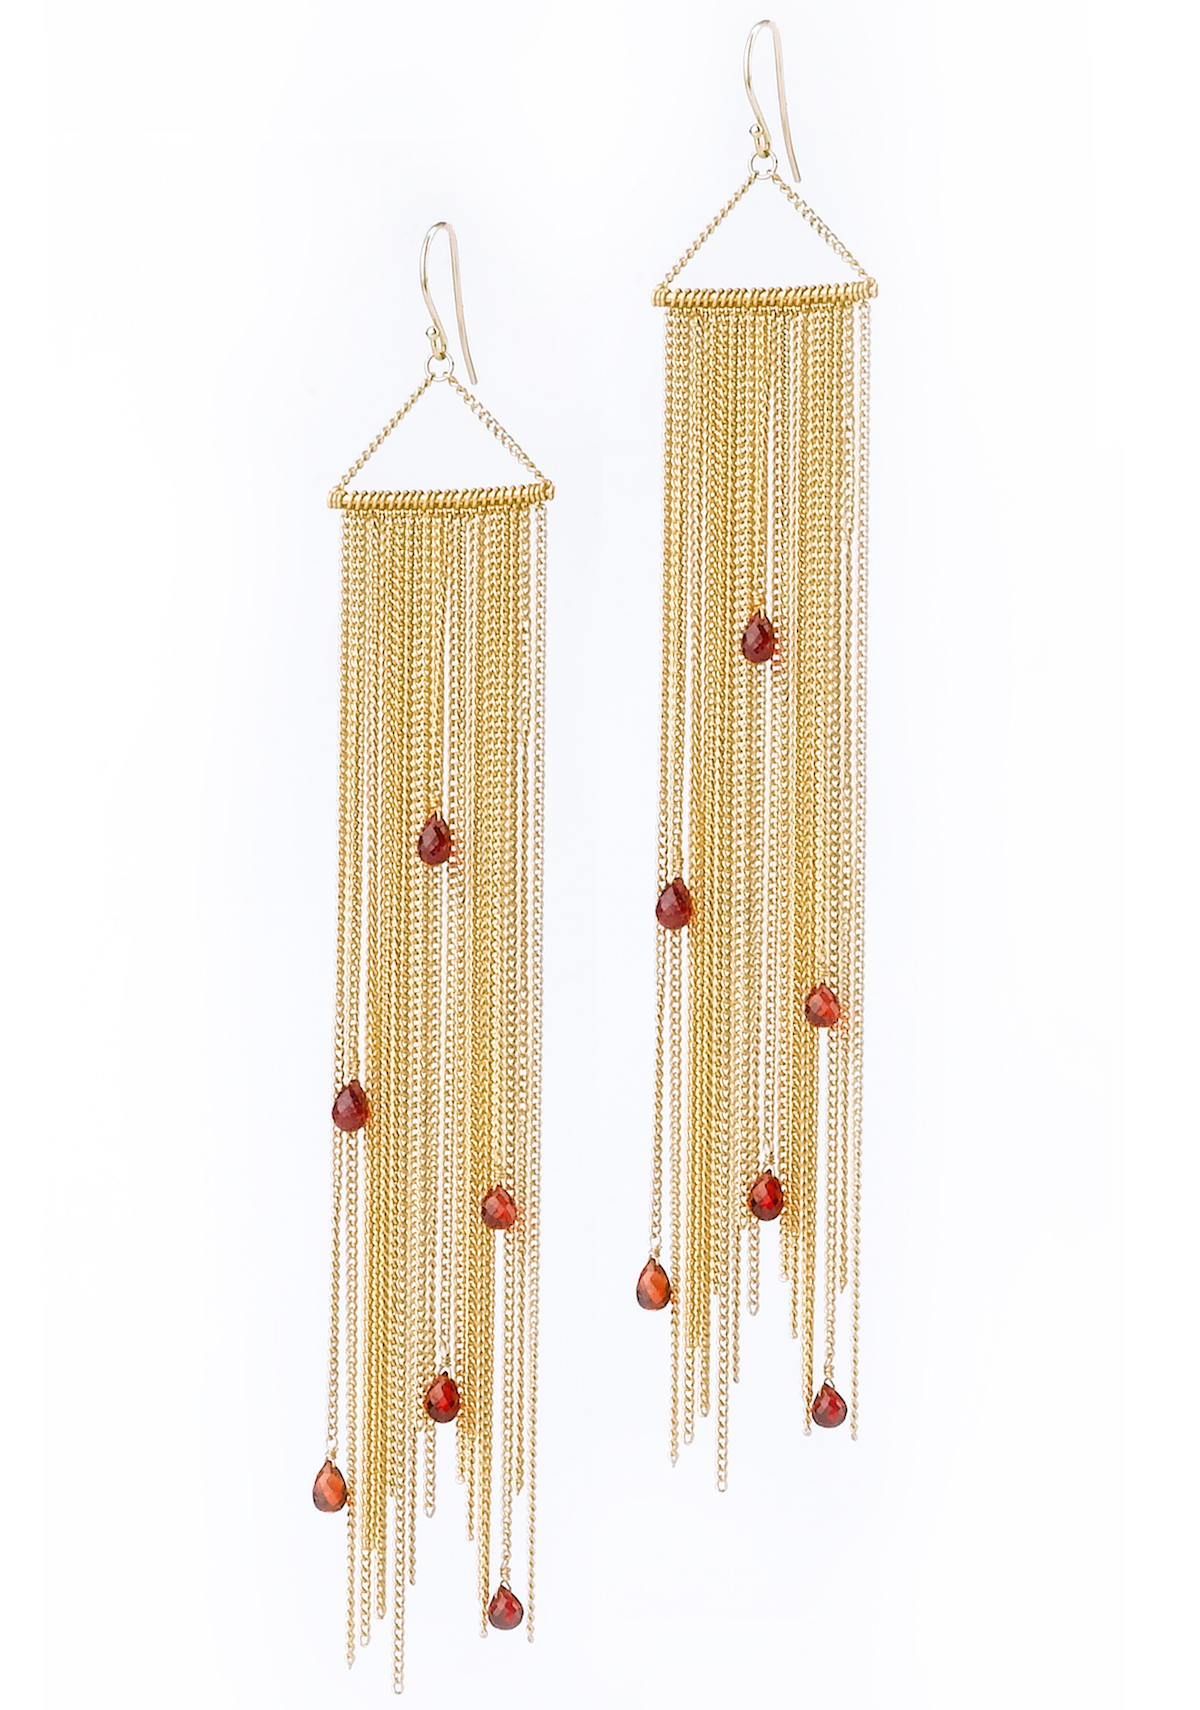 Amali Jewelry sapphire fringe drop earrings | JCK On Your Market